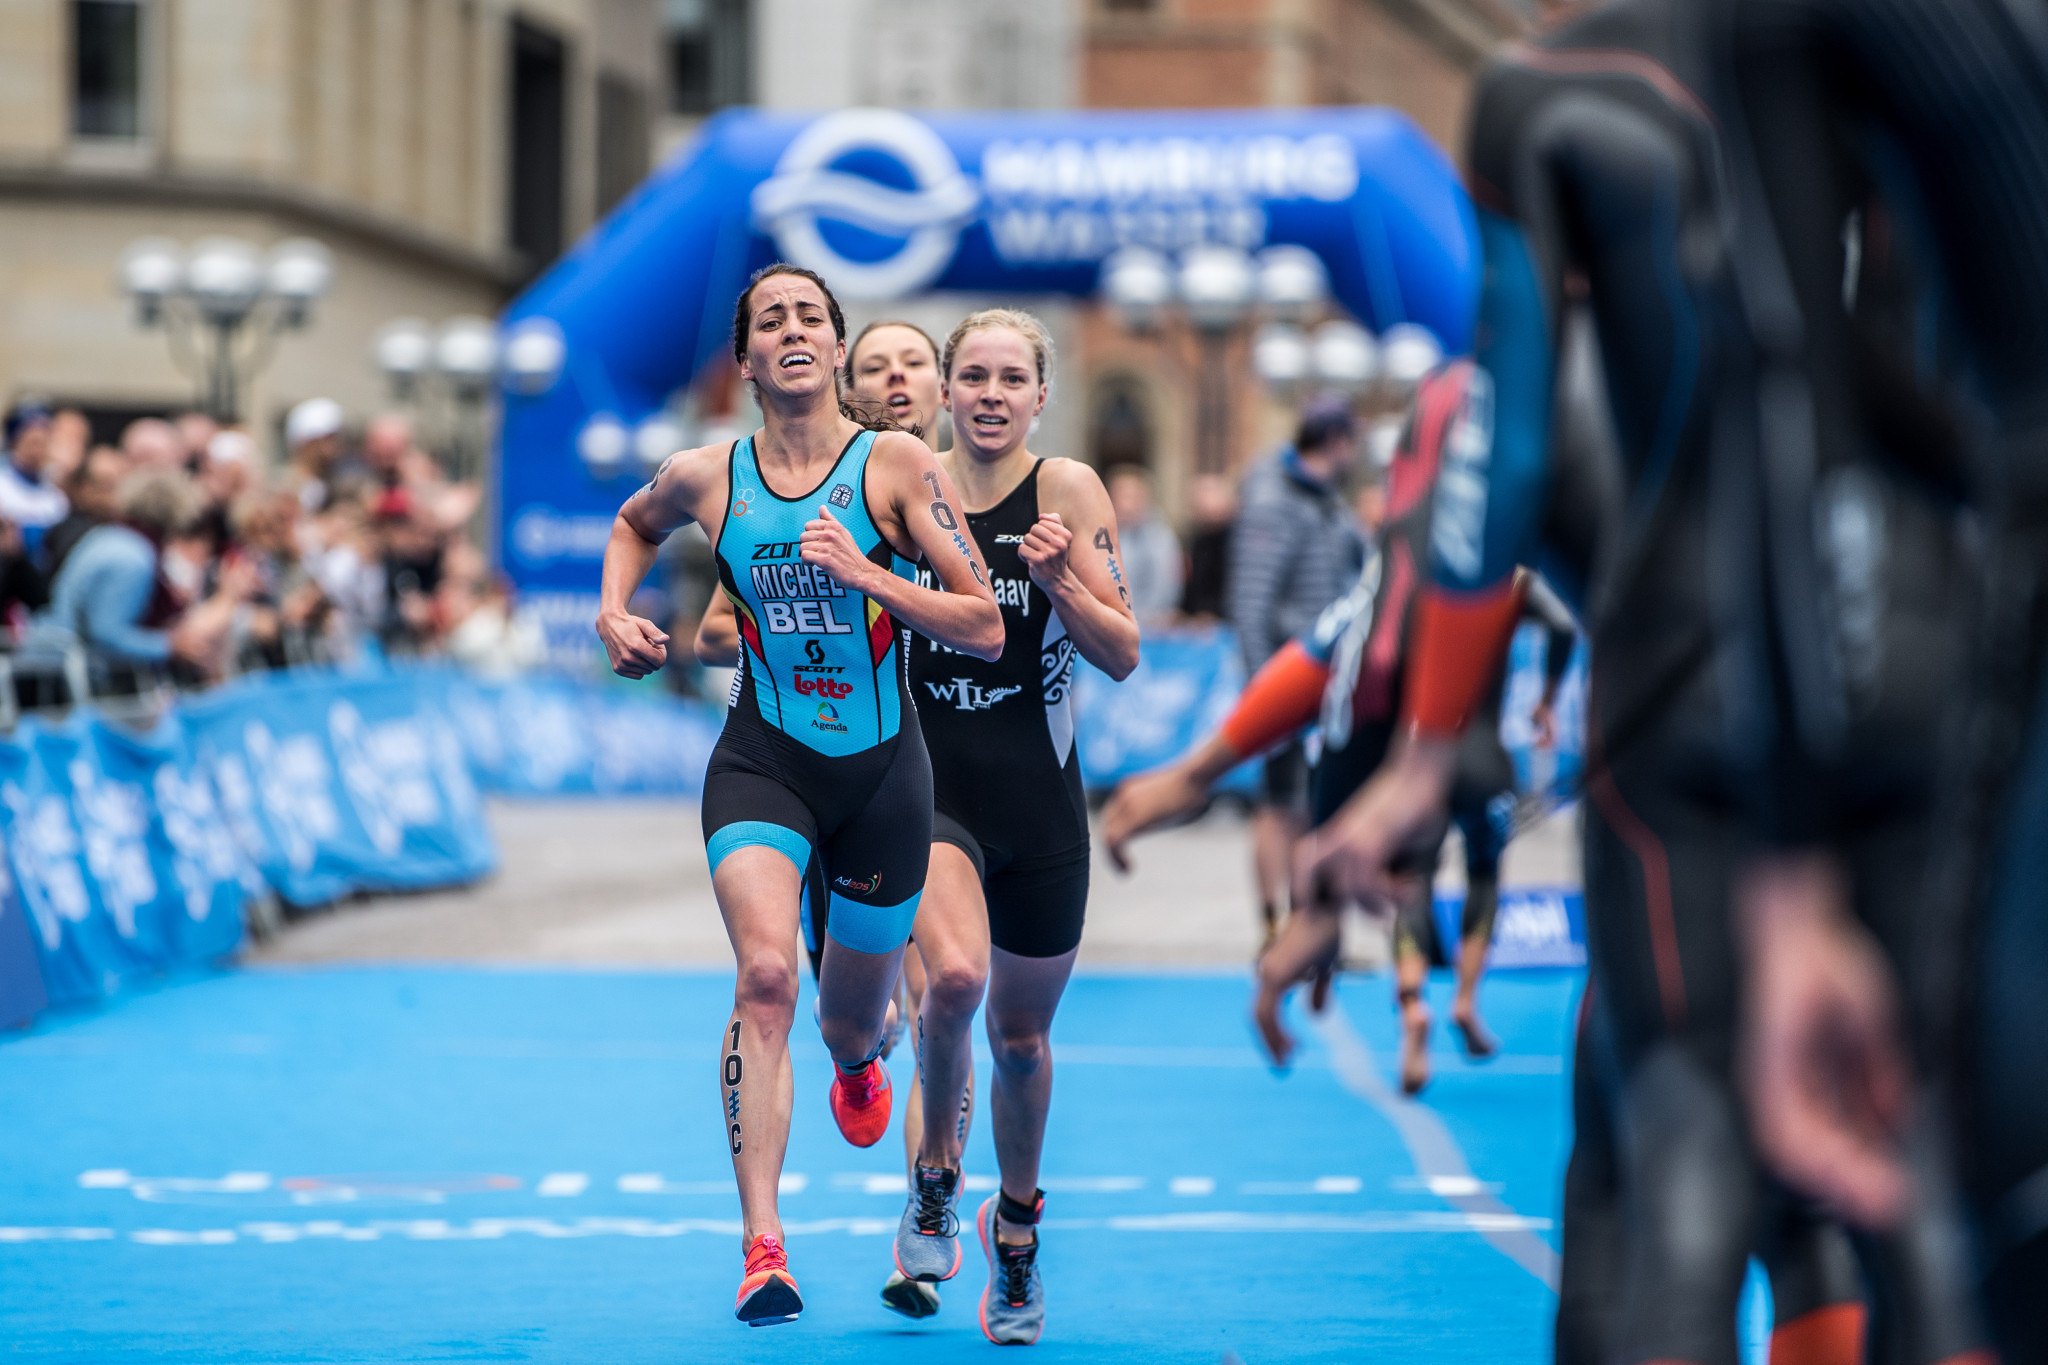 Belgium set for Tokyo 2020 after winning triathlon mixed relay Olympic qualifier